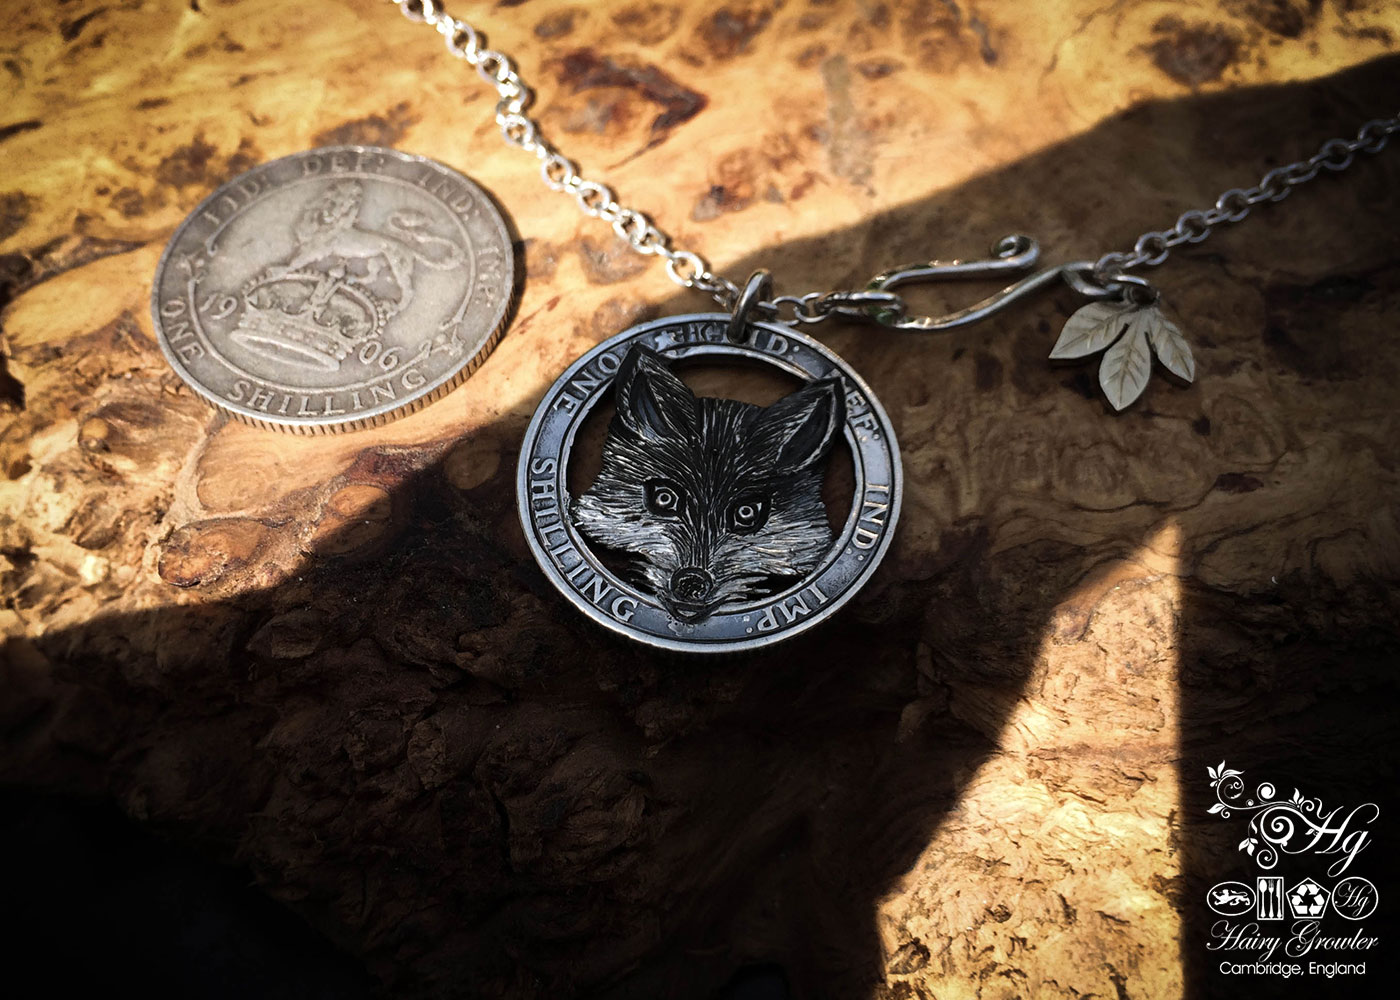 Handcrafted and recycled silver shilling The Silver Shilling collection. silver fox necklace totally handcrafted and recycled from old sterling silver shilling coins. Designed and created by Hairy Growler Jewellery, Cambridge, UK. necklace